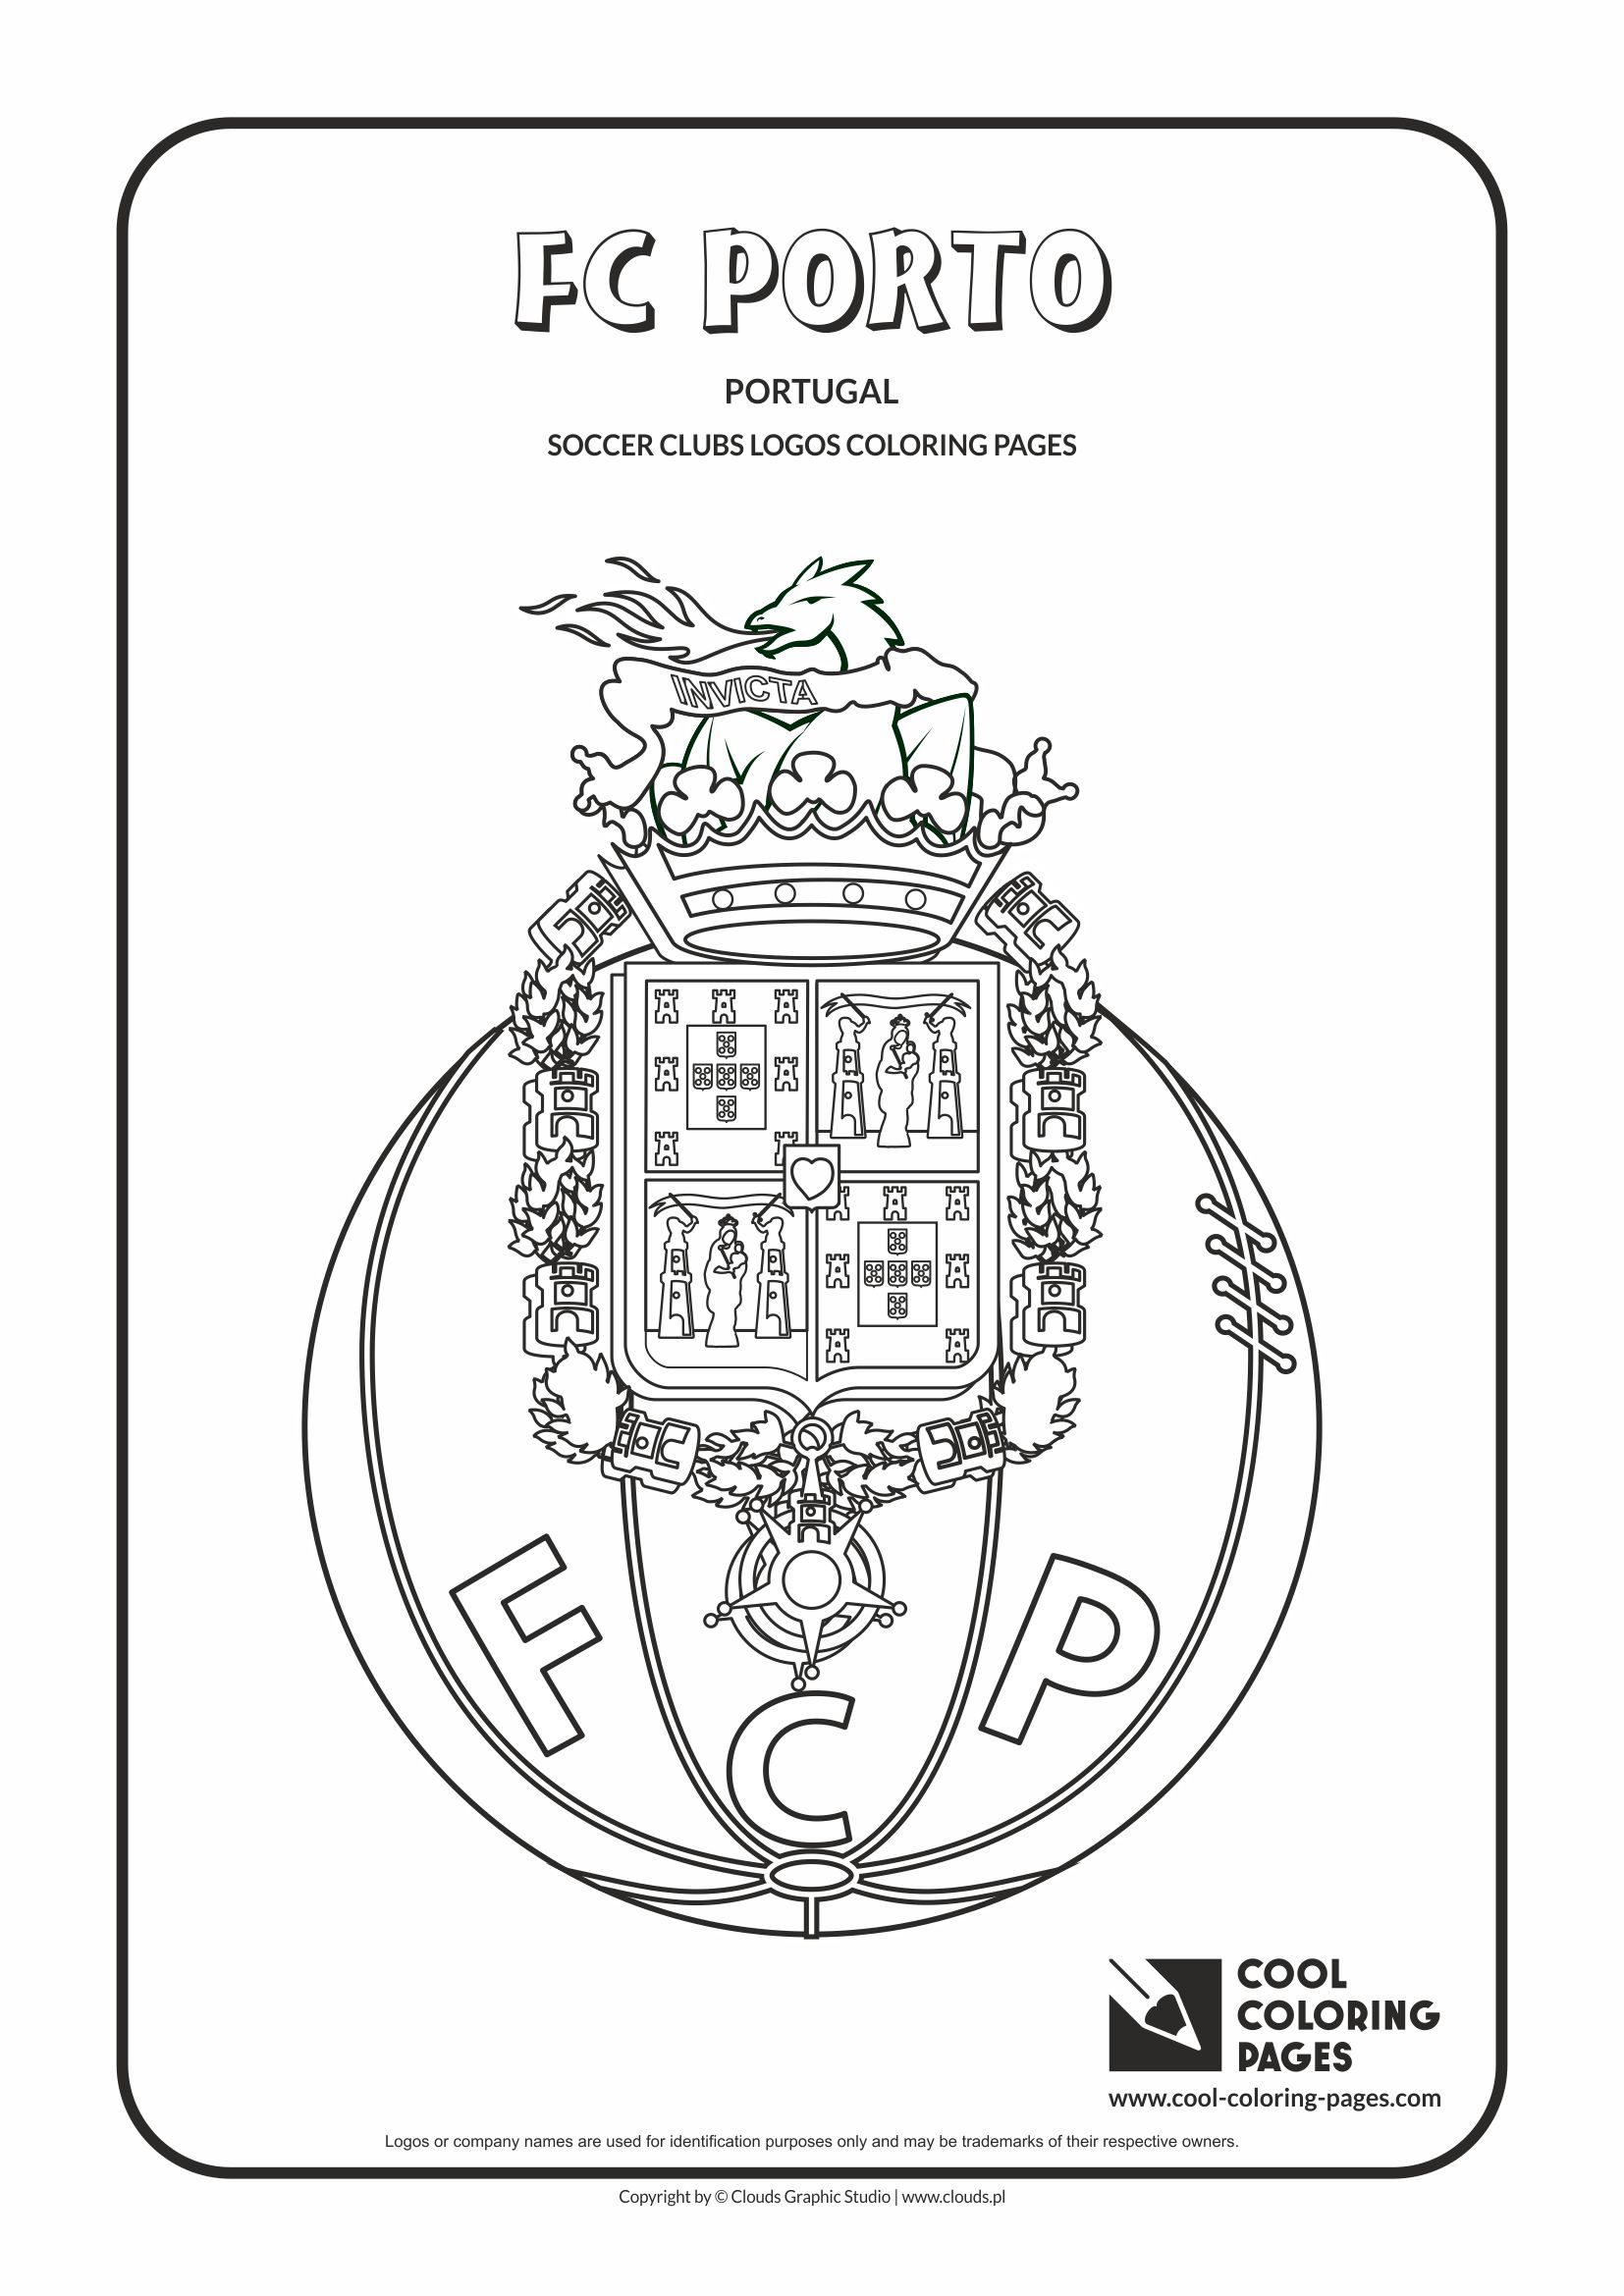 FC Porto logo coloring / Coloring page with FC Porto logo / FC Porto logo colouring page.